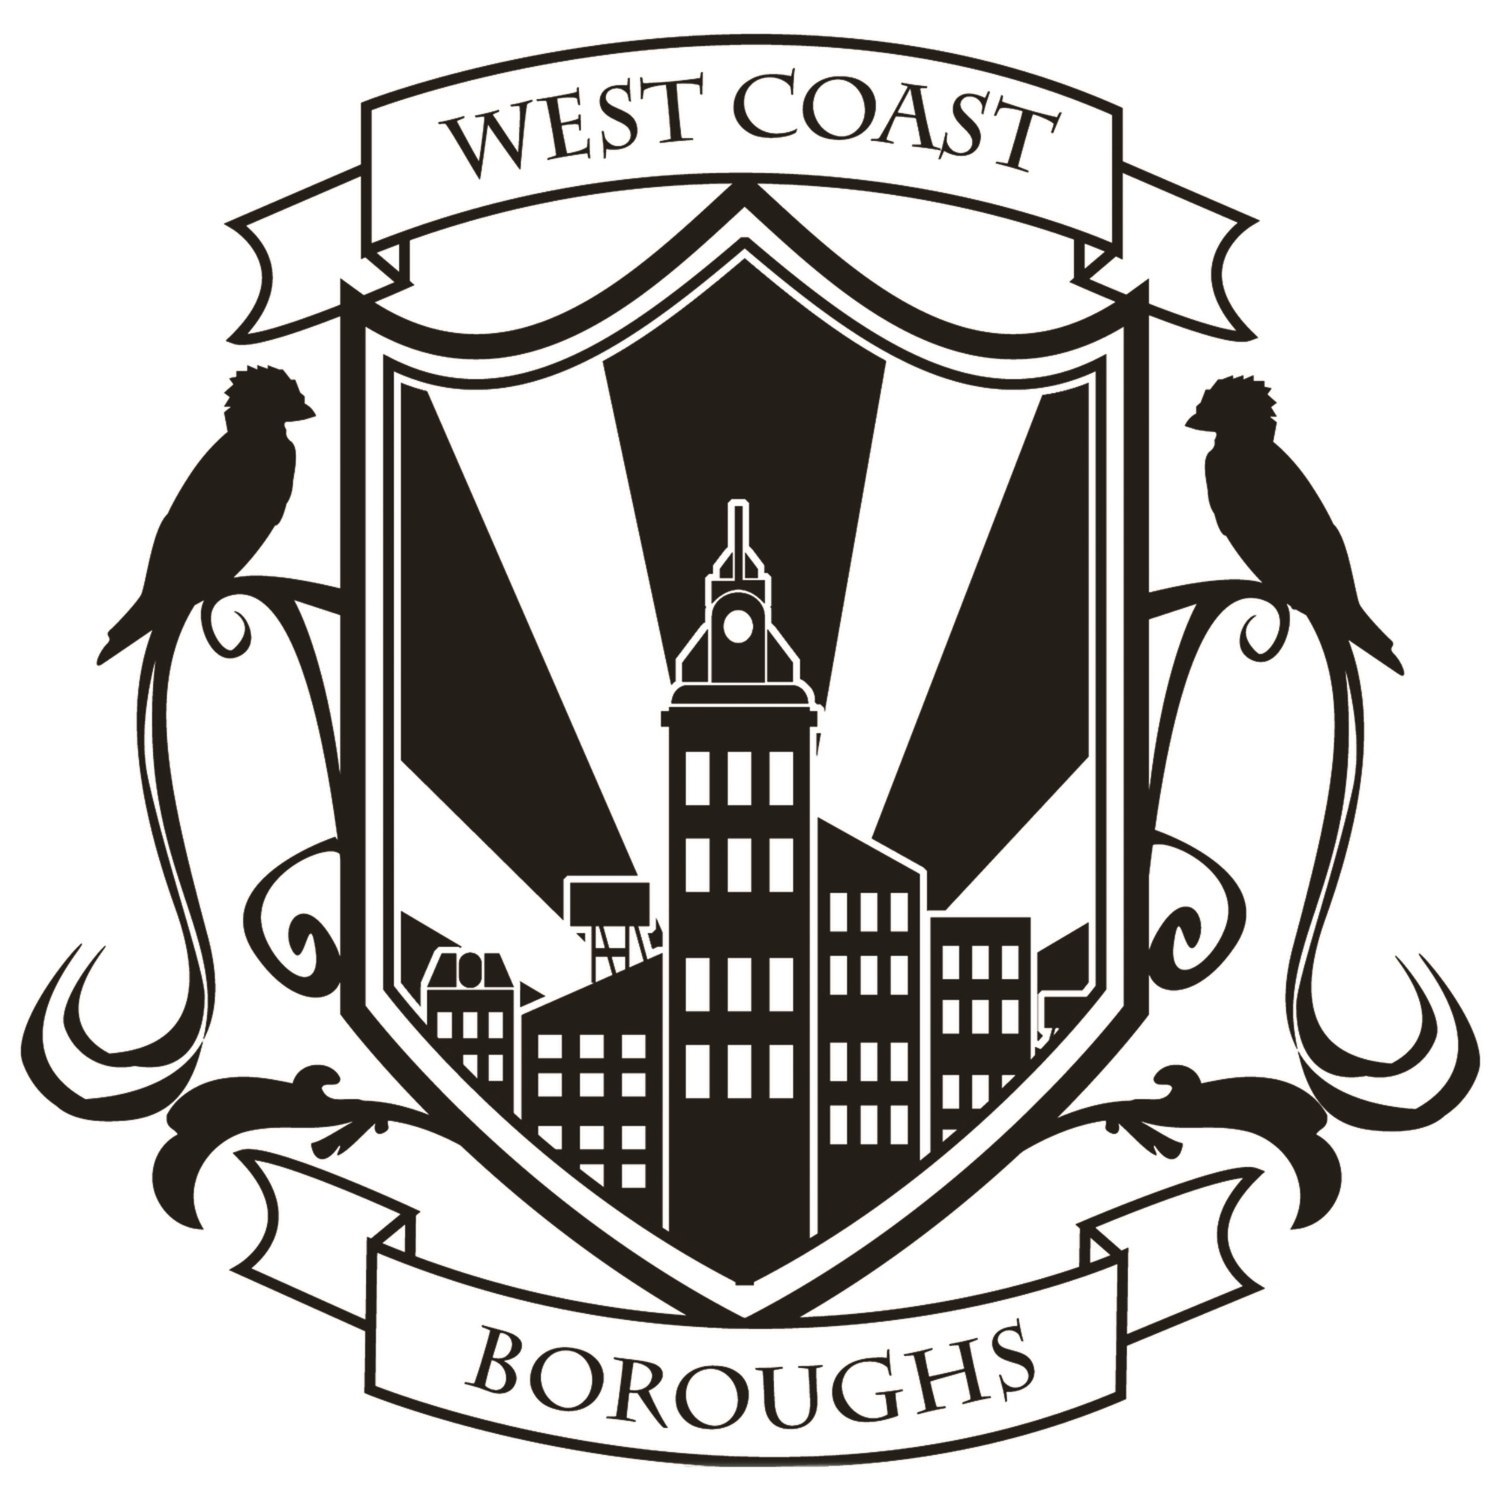 West Coast Boroughs